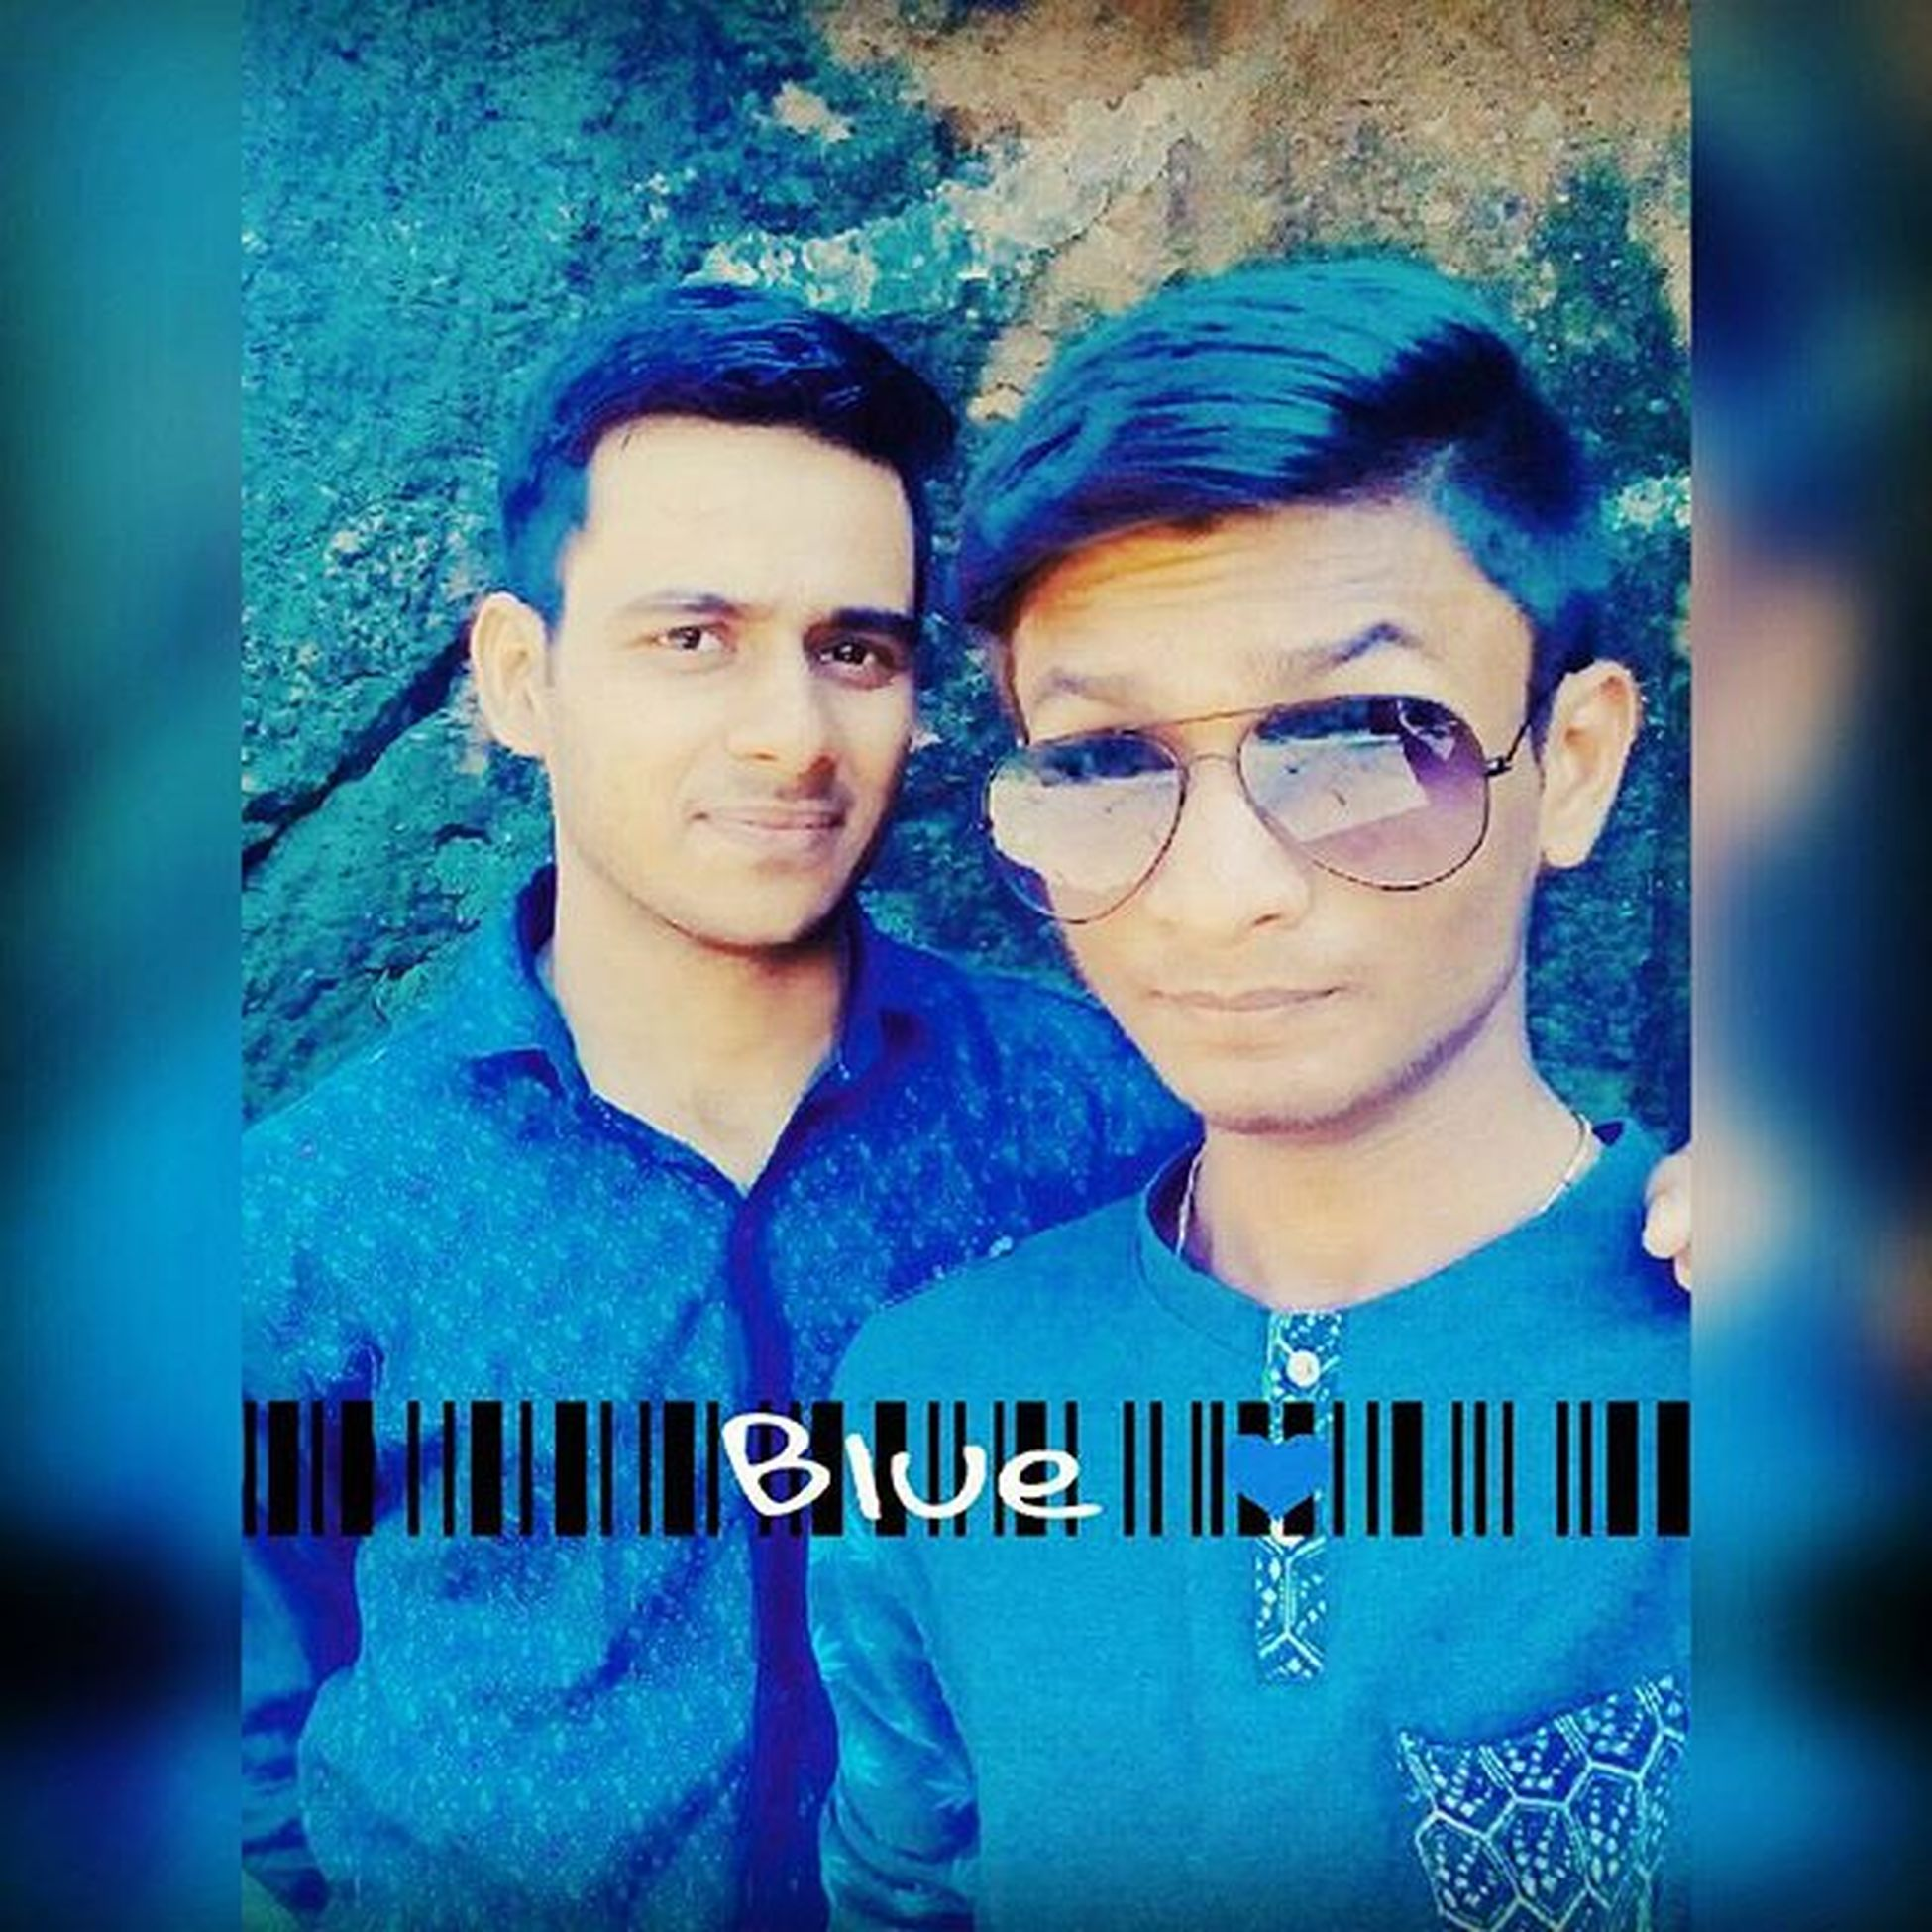 Blues🔵 Picoftheday Sgnp Selfietym Buddies👔 Greatday😉🙋👌😎 Coolhair Filter 😝😉